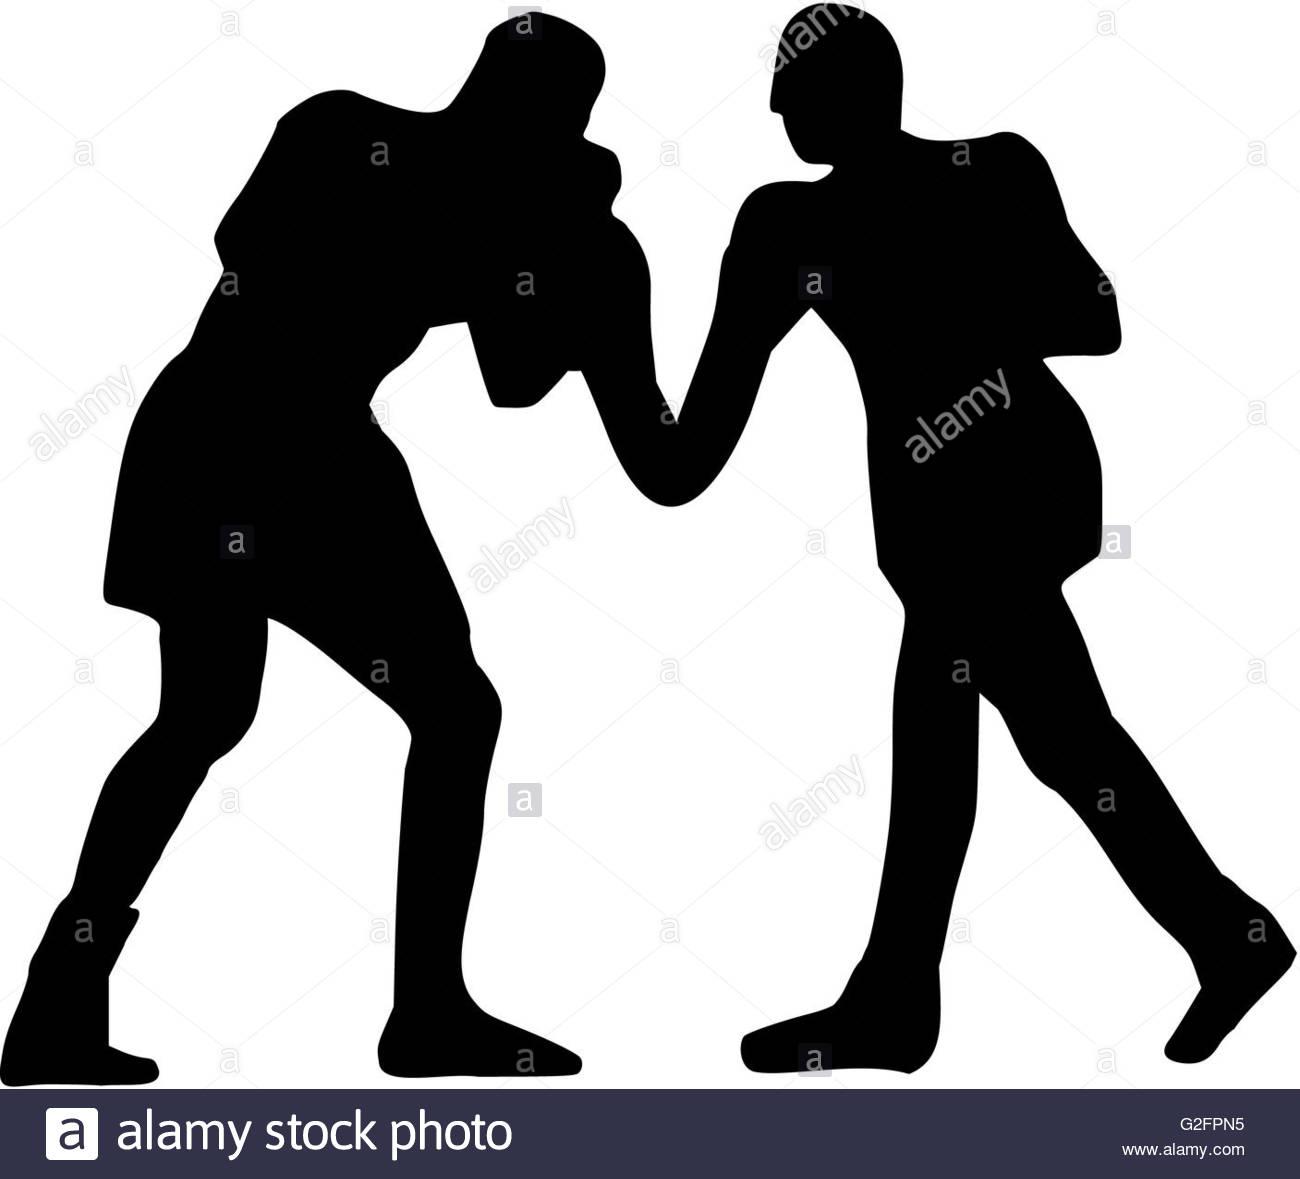 1300x1179 Boxing Fight Silhouette Stock Photo 104838641